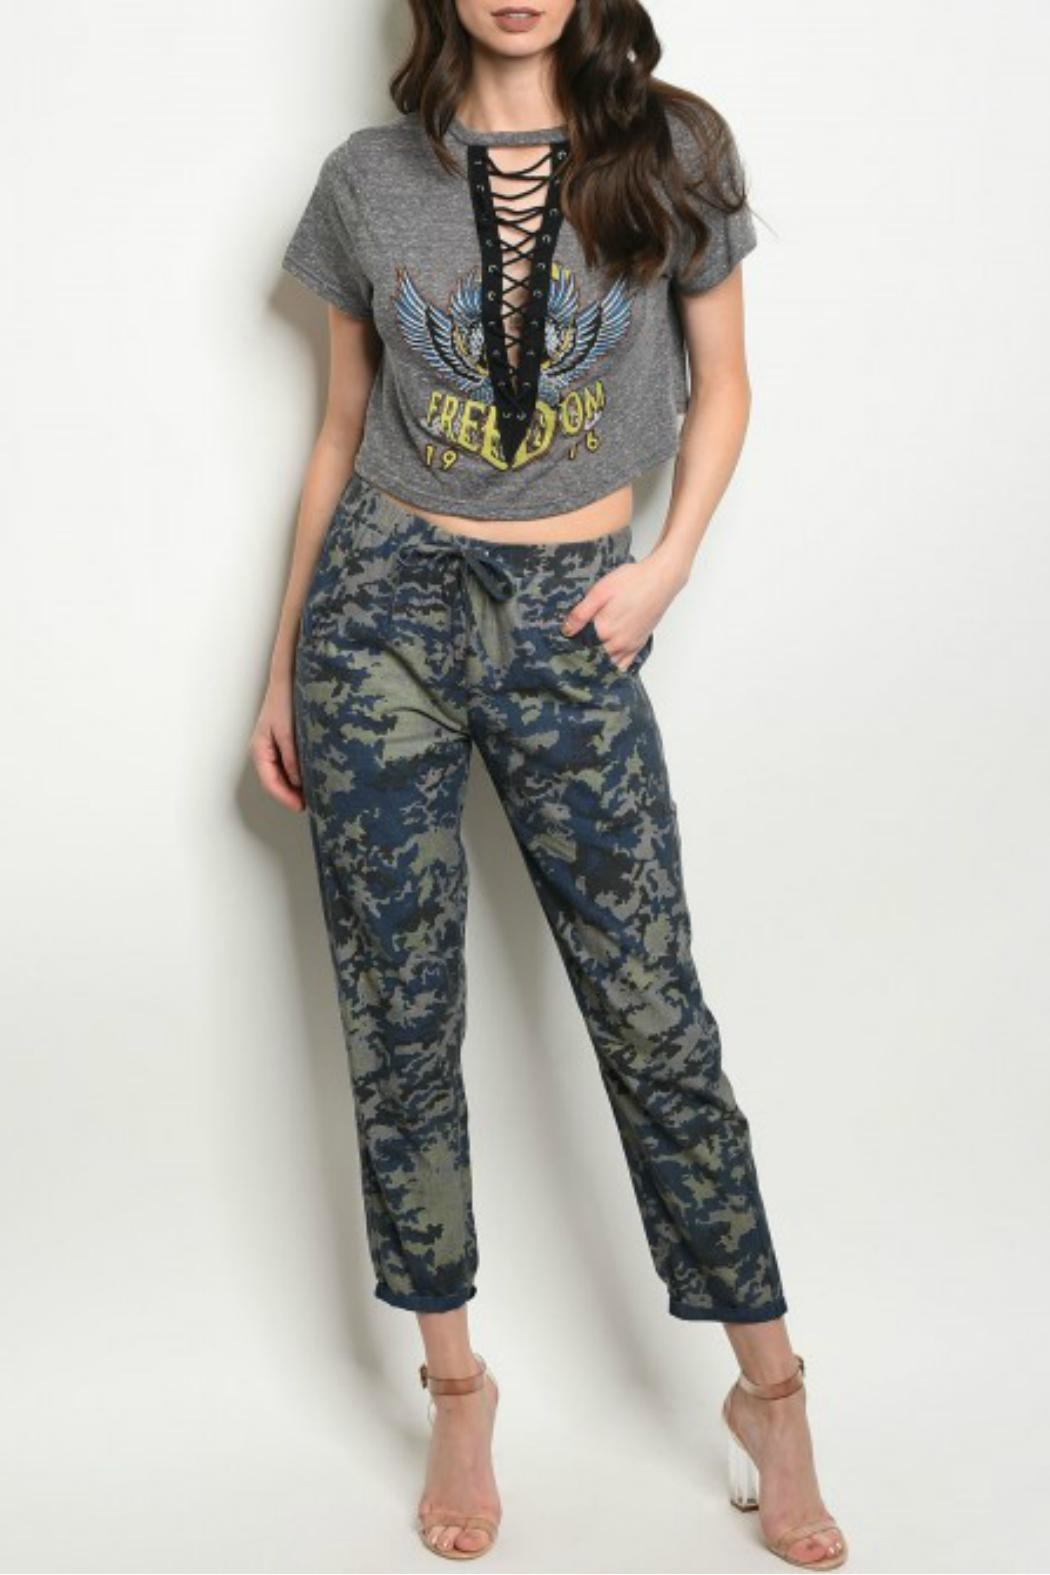 Signature 8 Blue Camouflage Pants from Colorado by Lady Unique ... 402a917a654